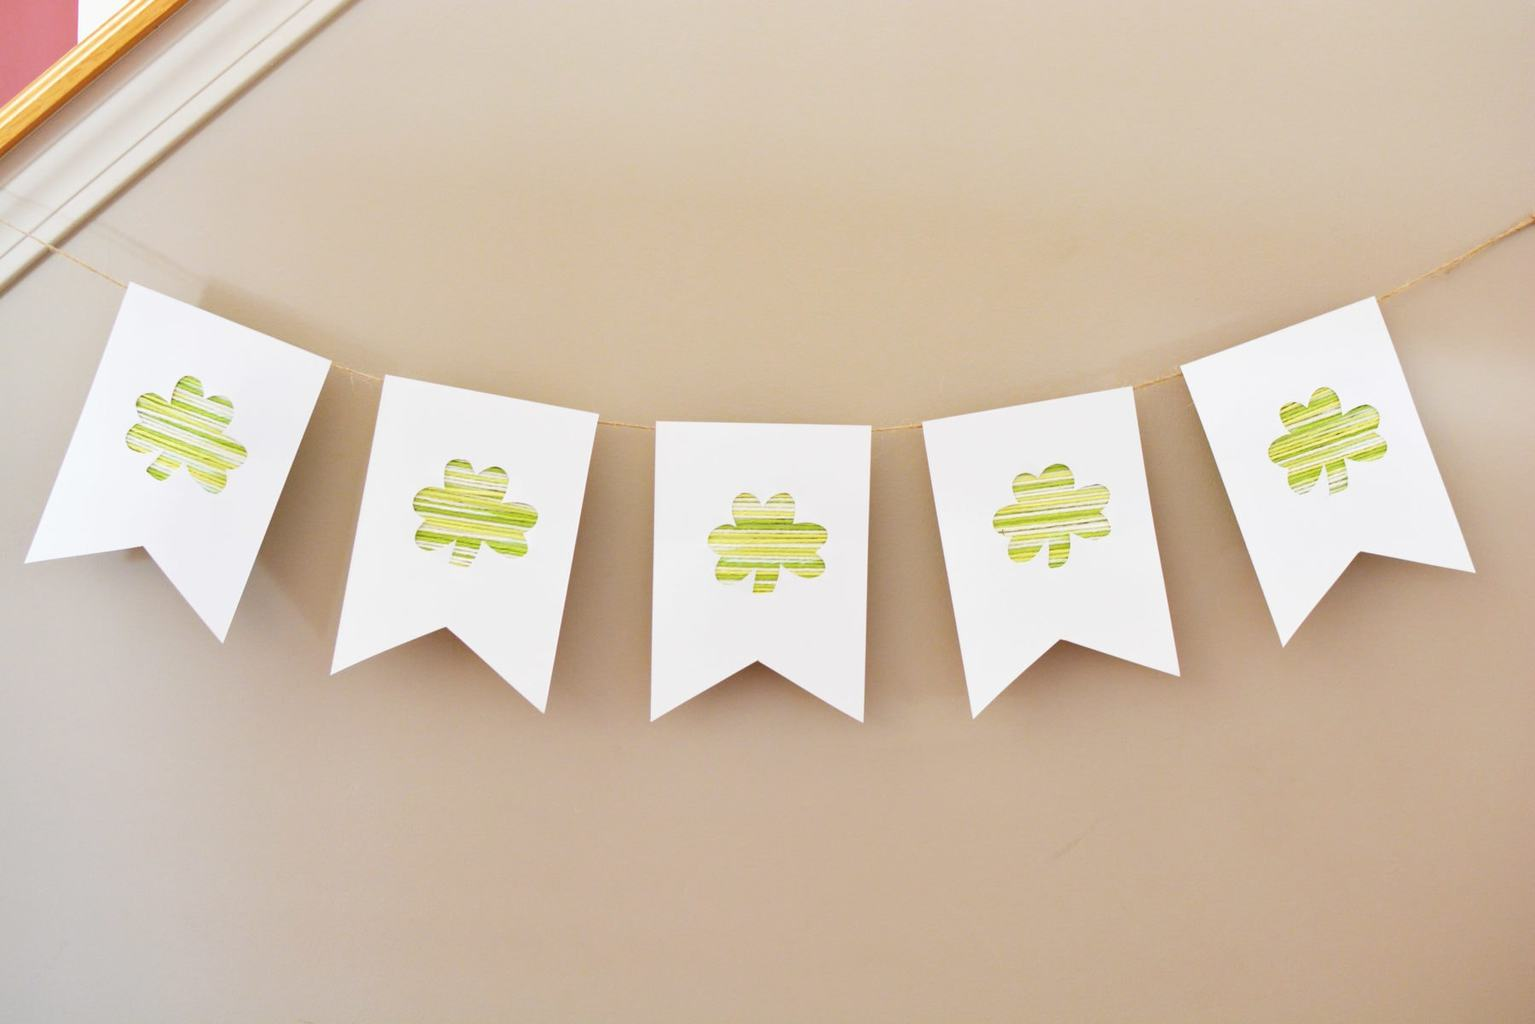 Are you ready for something incredibly cute for St. Patrick's Day? This DIY St. Patrick's Day Banner and Homemade Bunting is super easy to make. It doesn't take many supplies to make this craft, but it's a whole lot of fun.